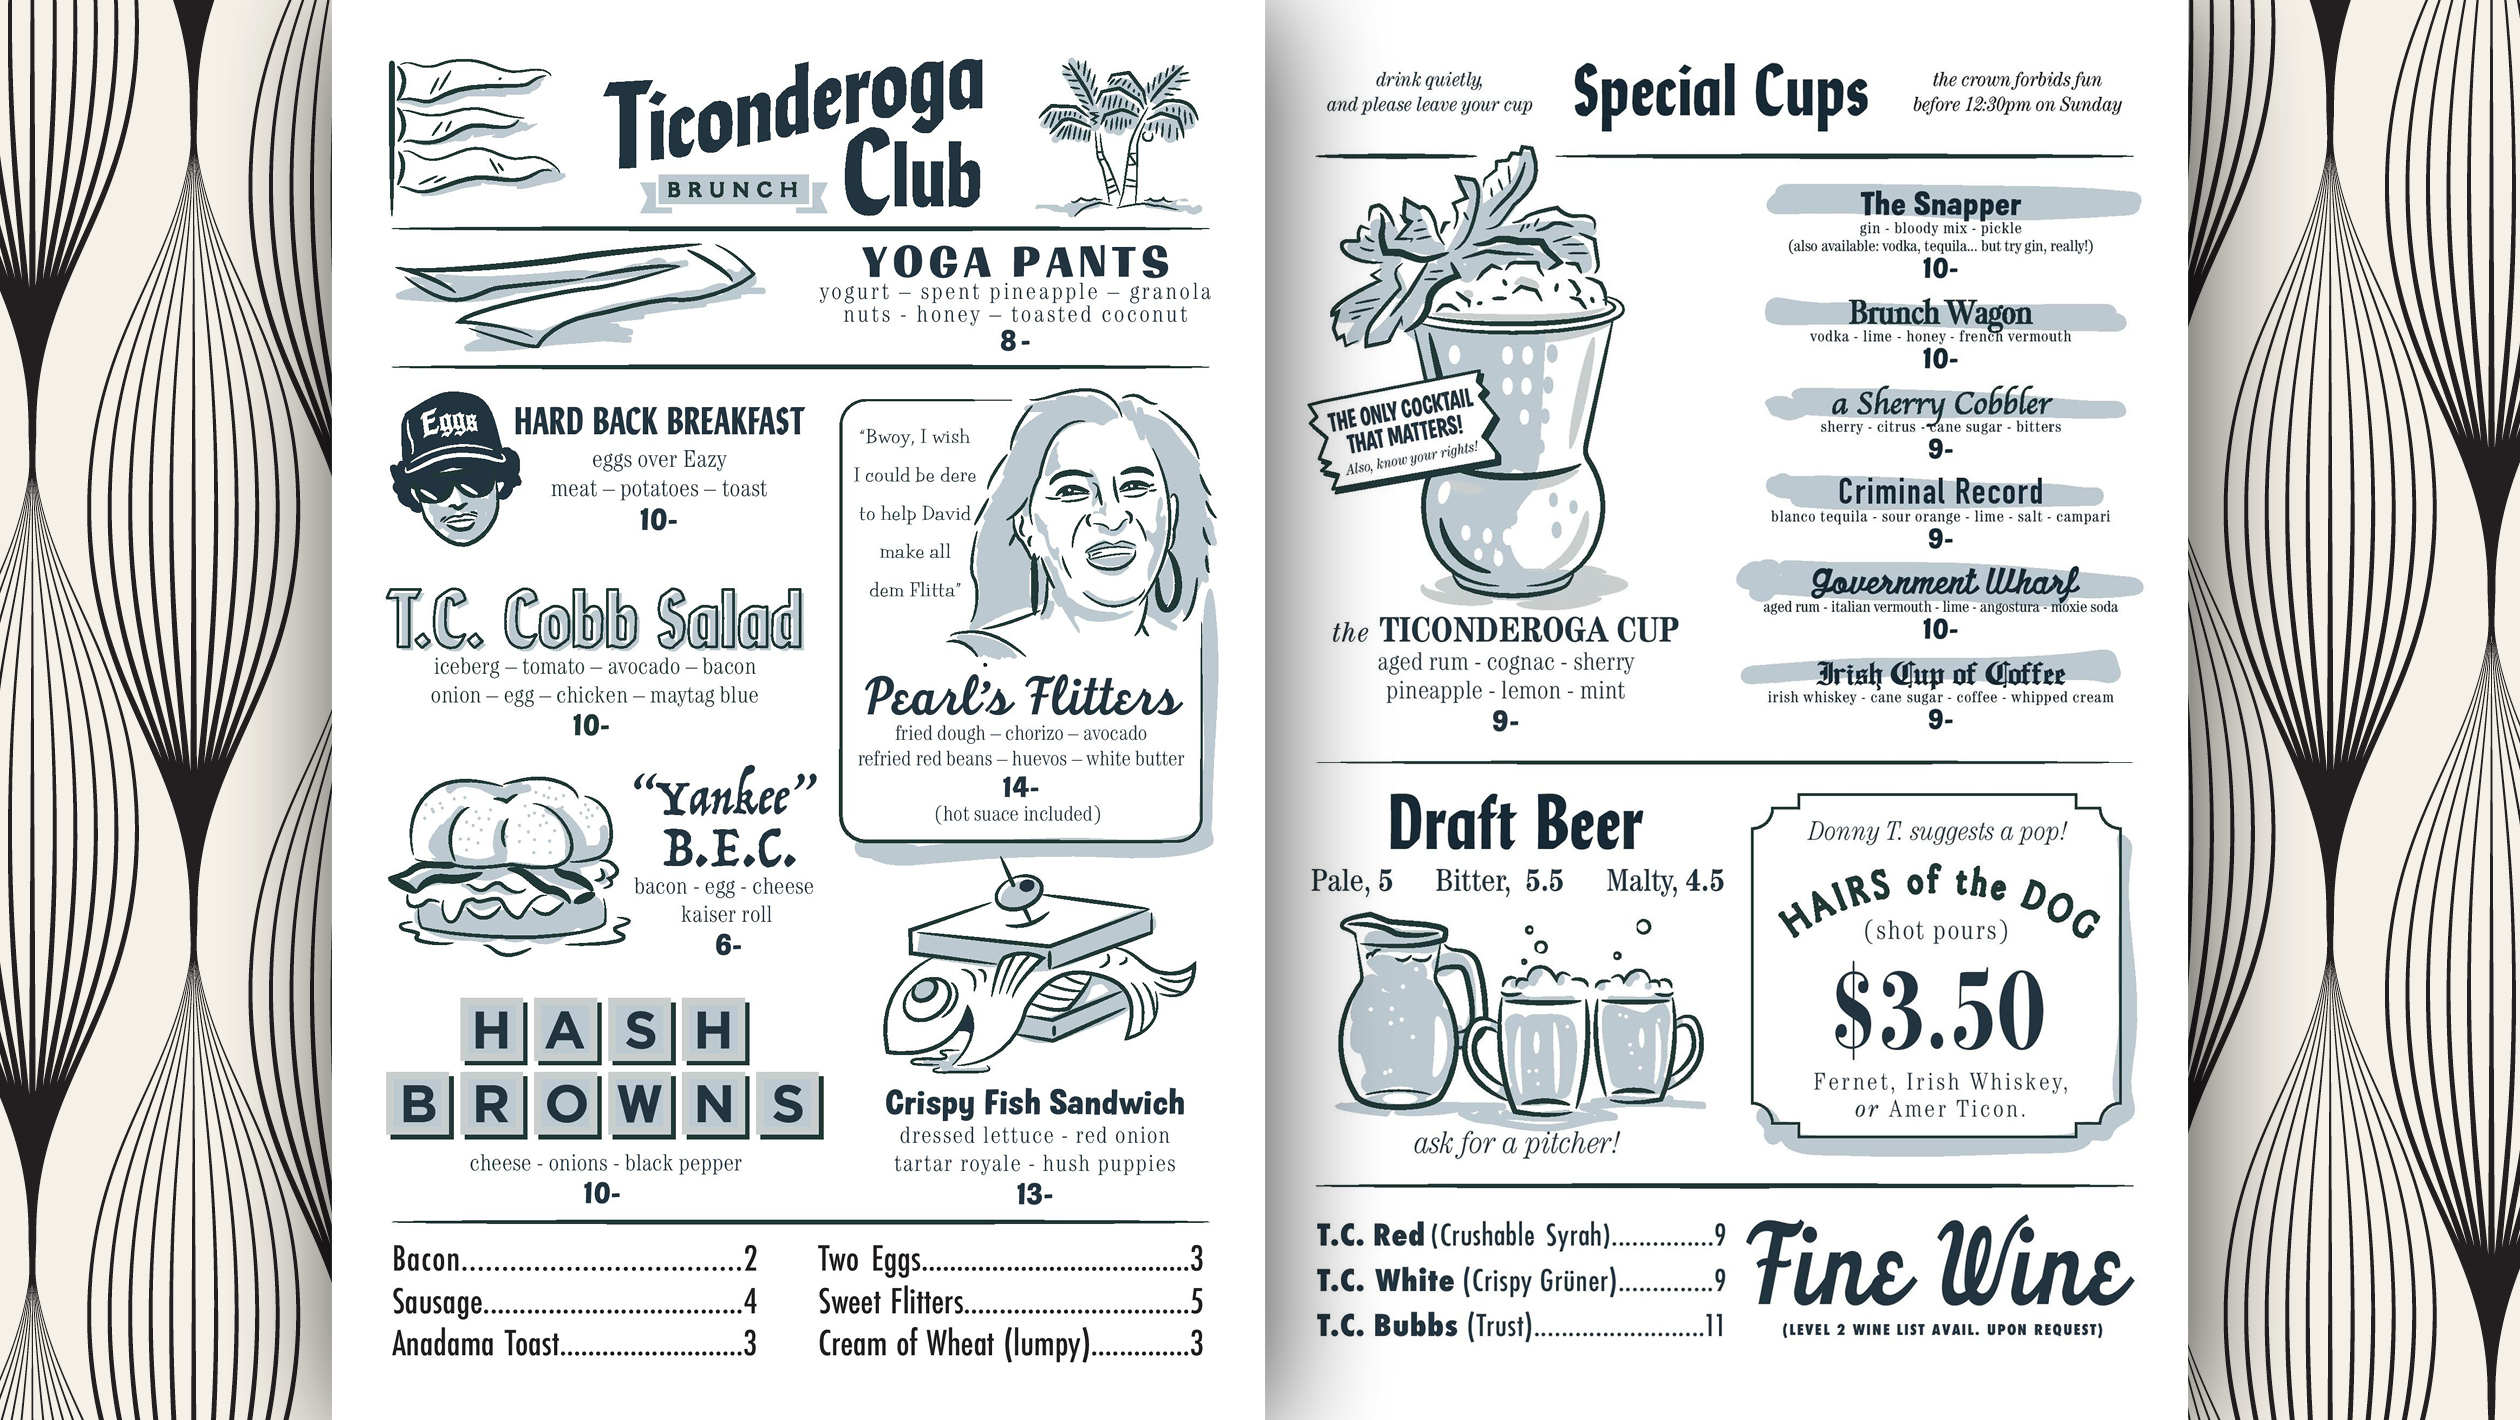 Ticonderoga Club Menu